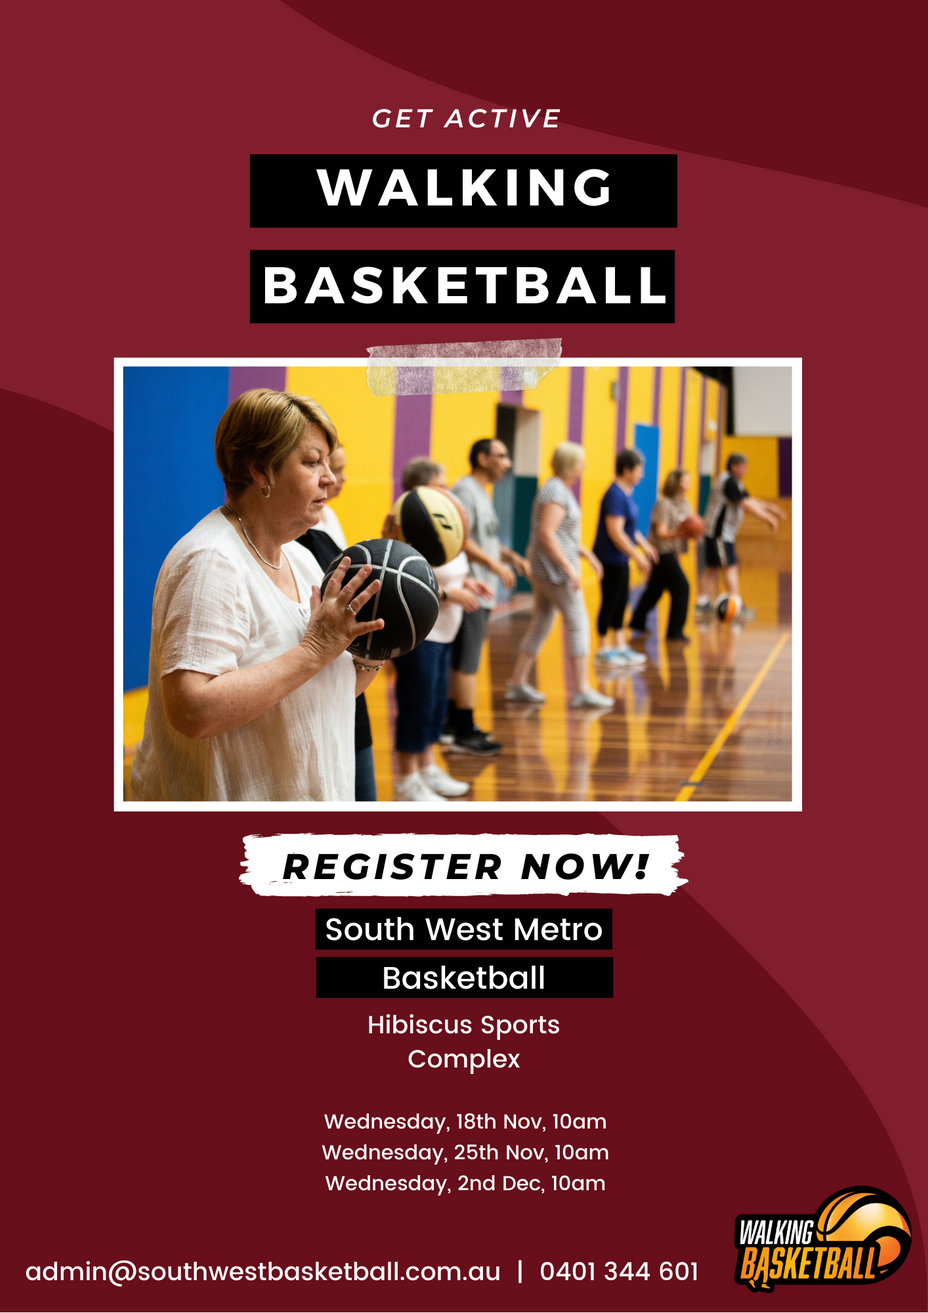 Walking Basketball is returning to Hibiscus Sports Complex, Mt Gravatt, for 3 more weeks in 2020!